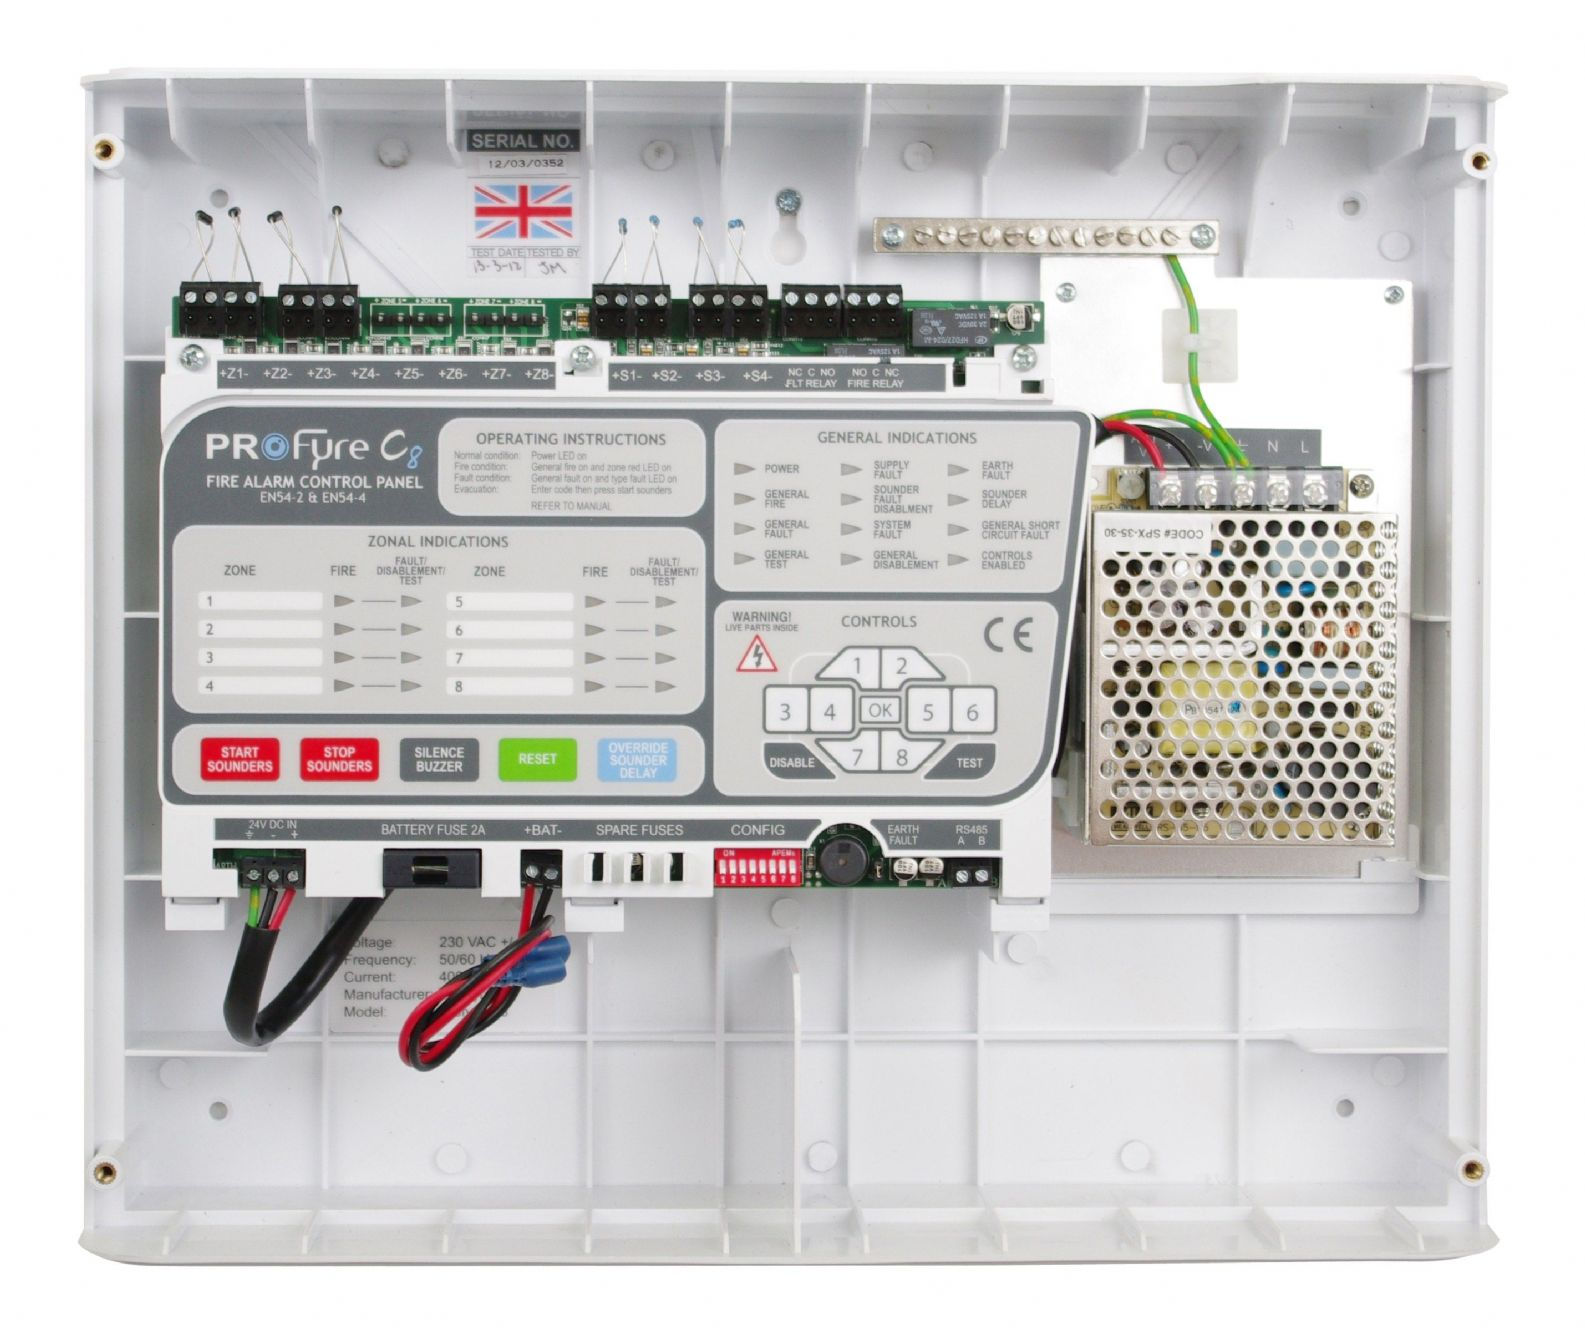 C8 2 Profyre Zone Conventional Fire Alarm Panel Wiring Alarms In1 Zeta Infinity 1